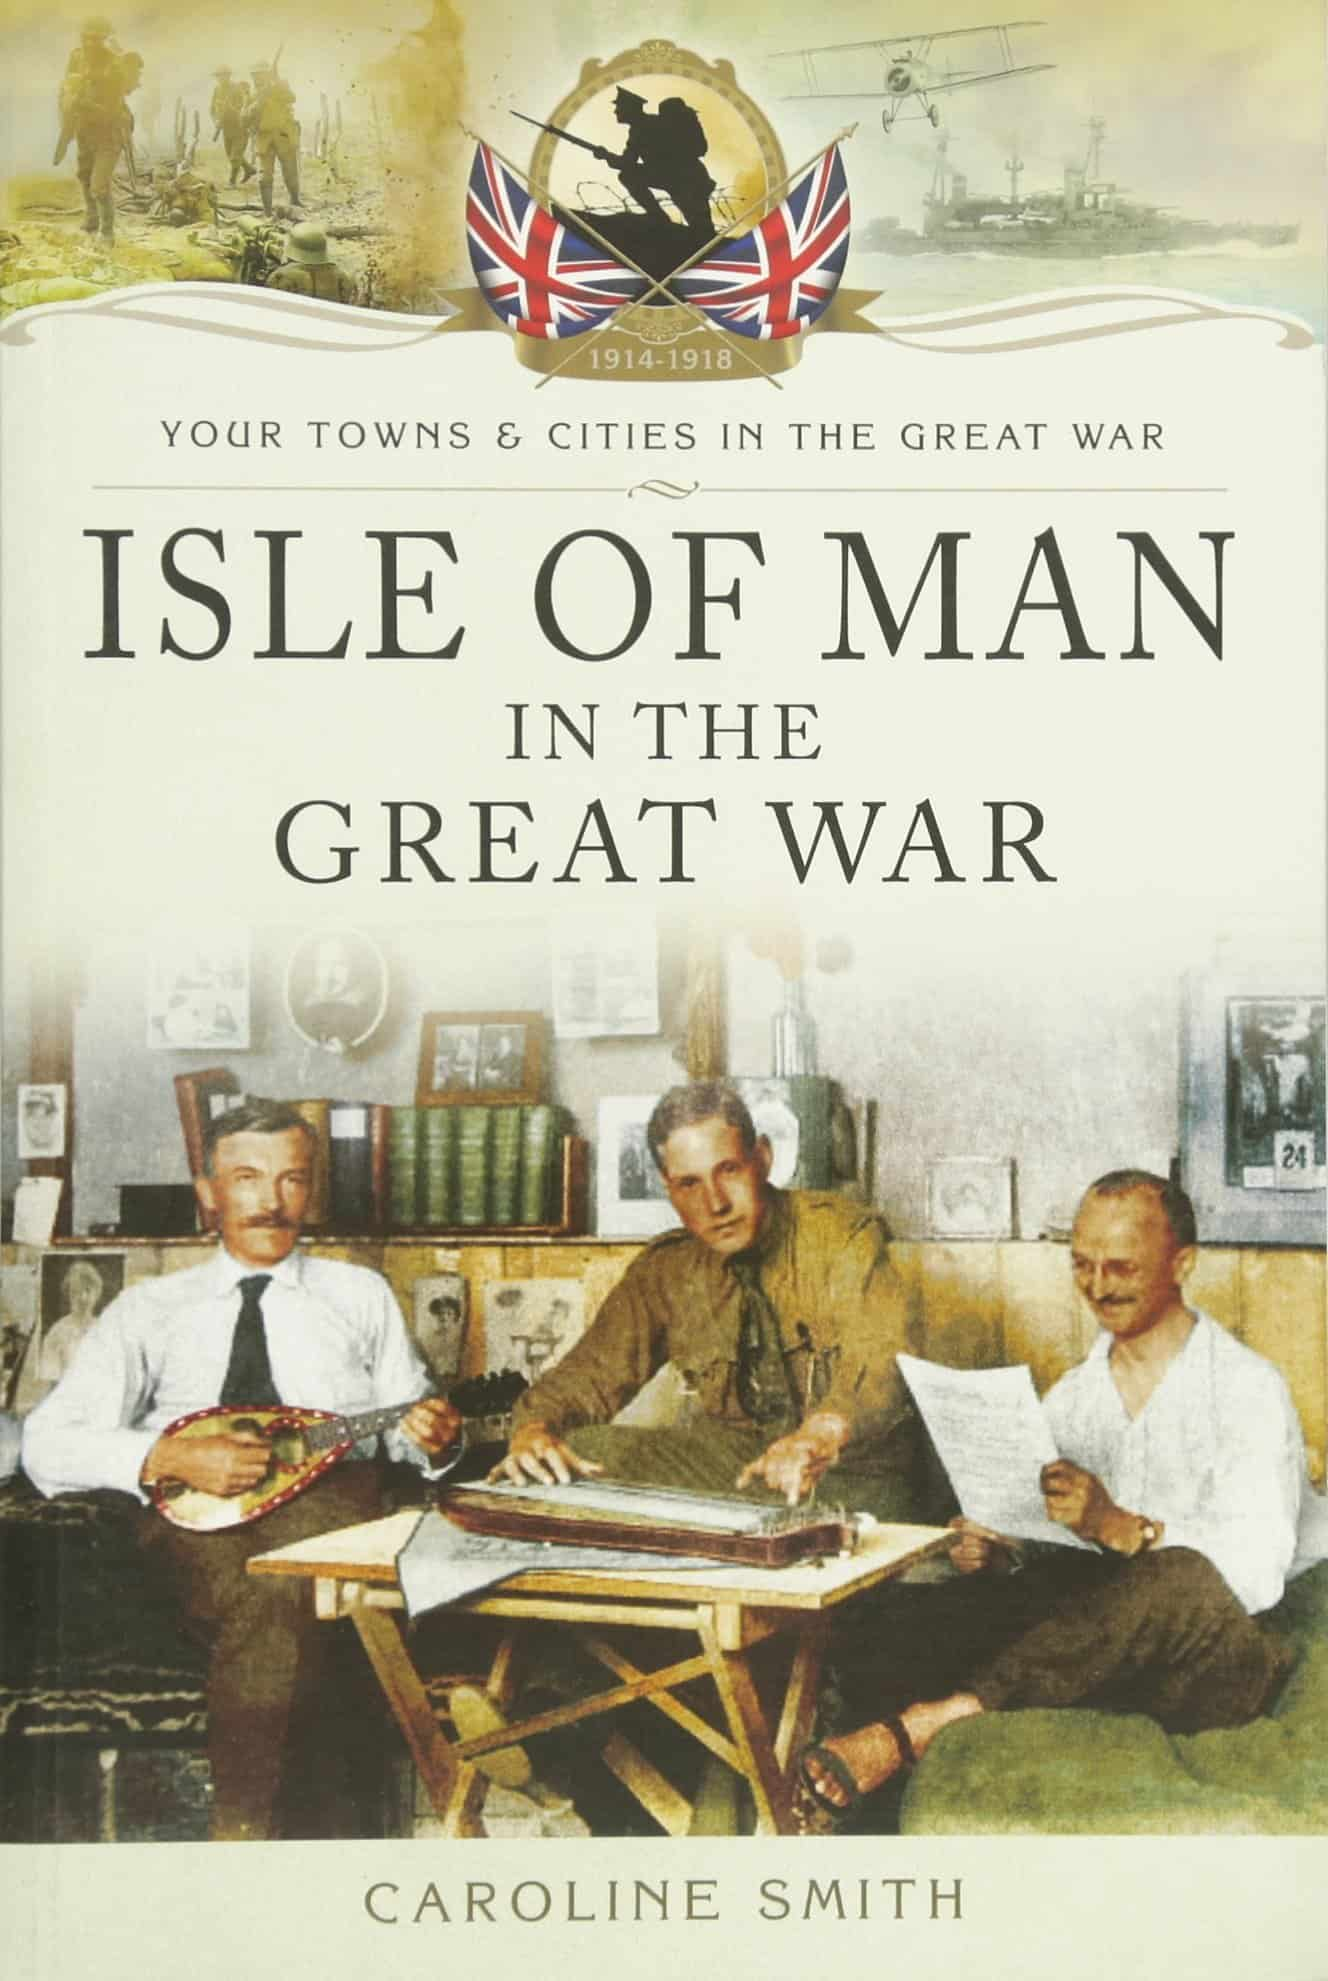 Isle of Man in the Great War by Caroline Smith - Manx